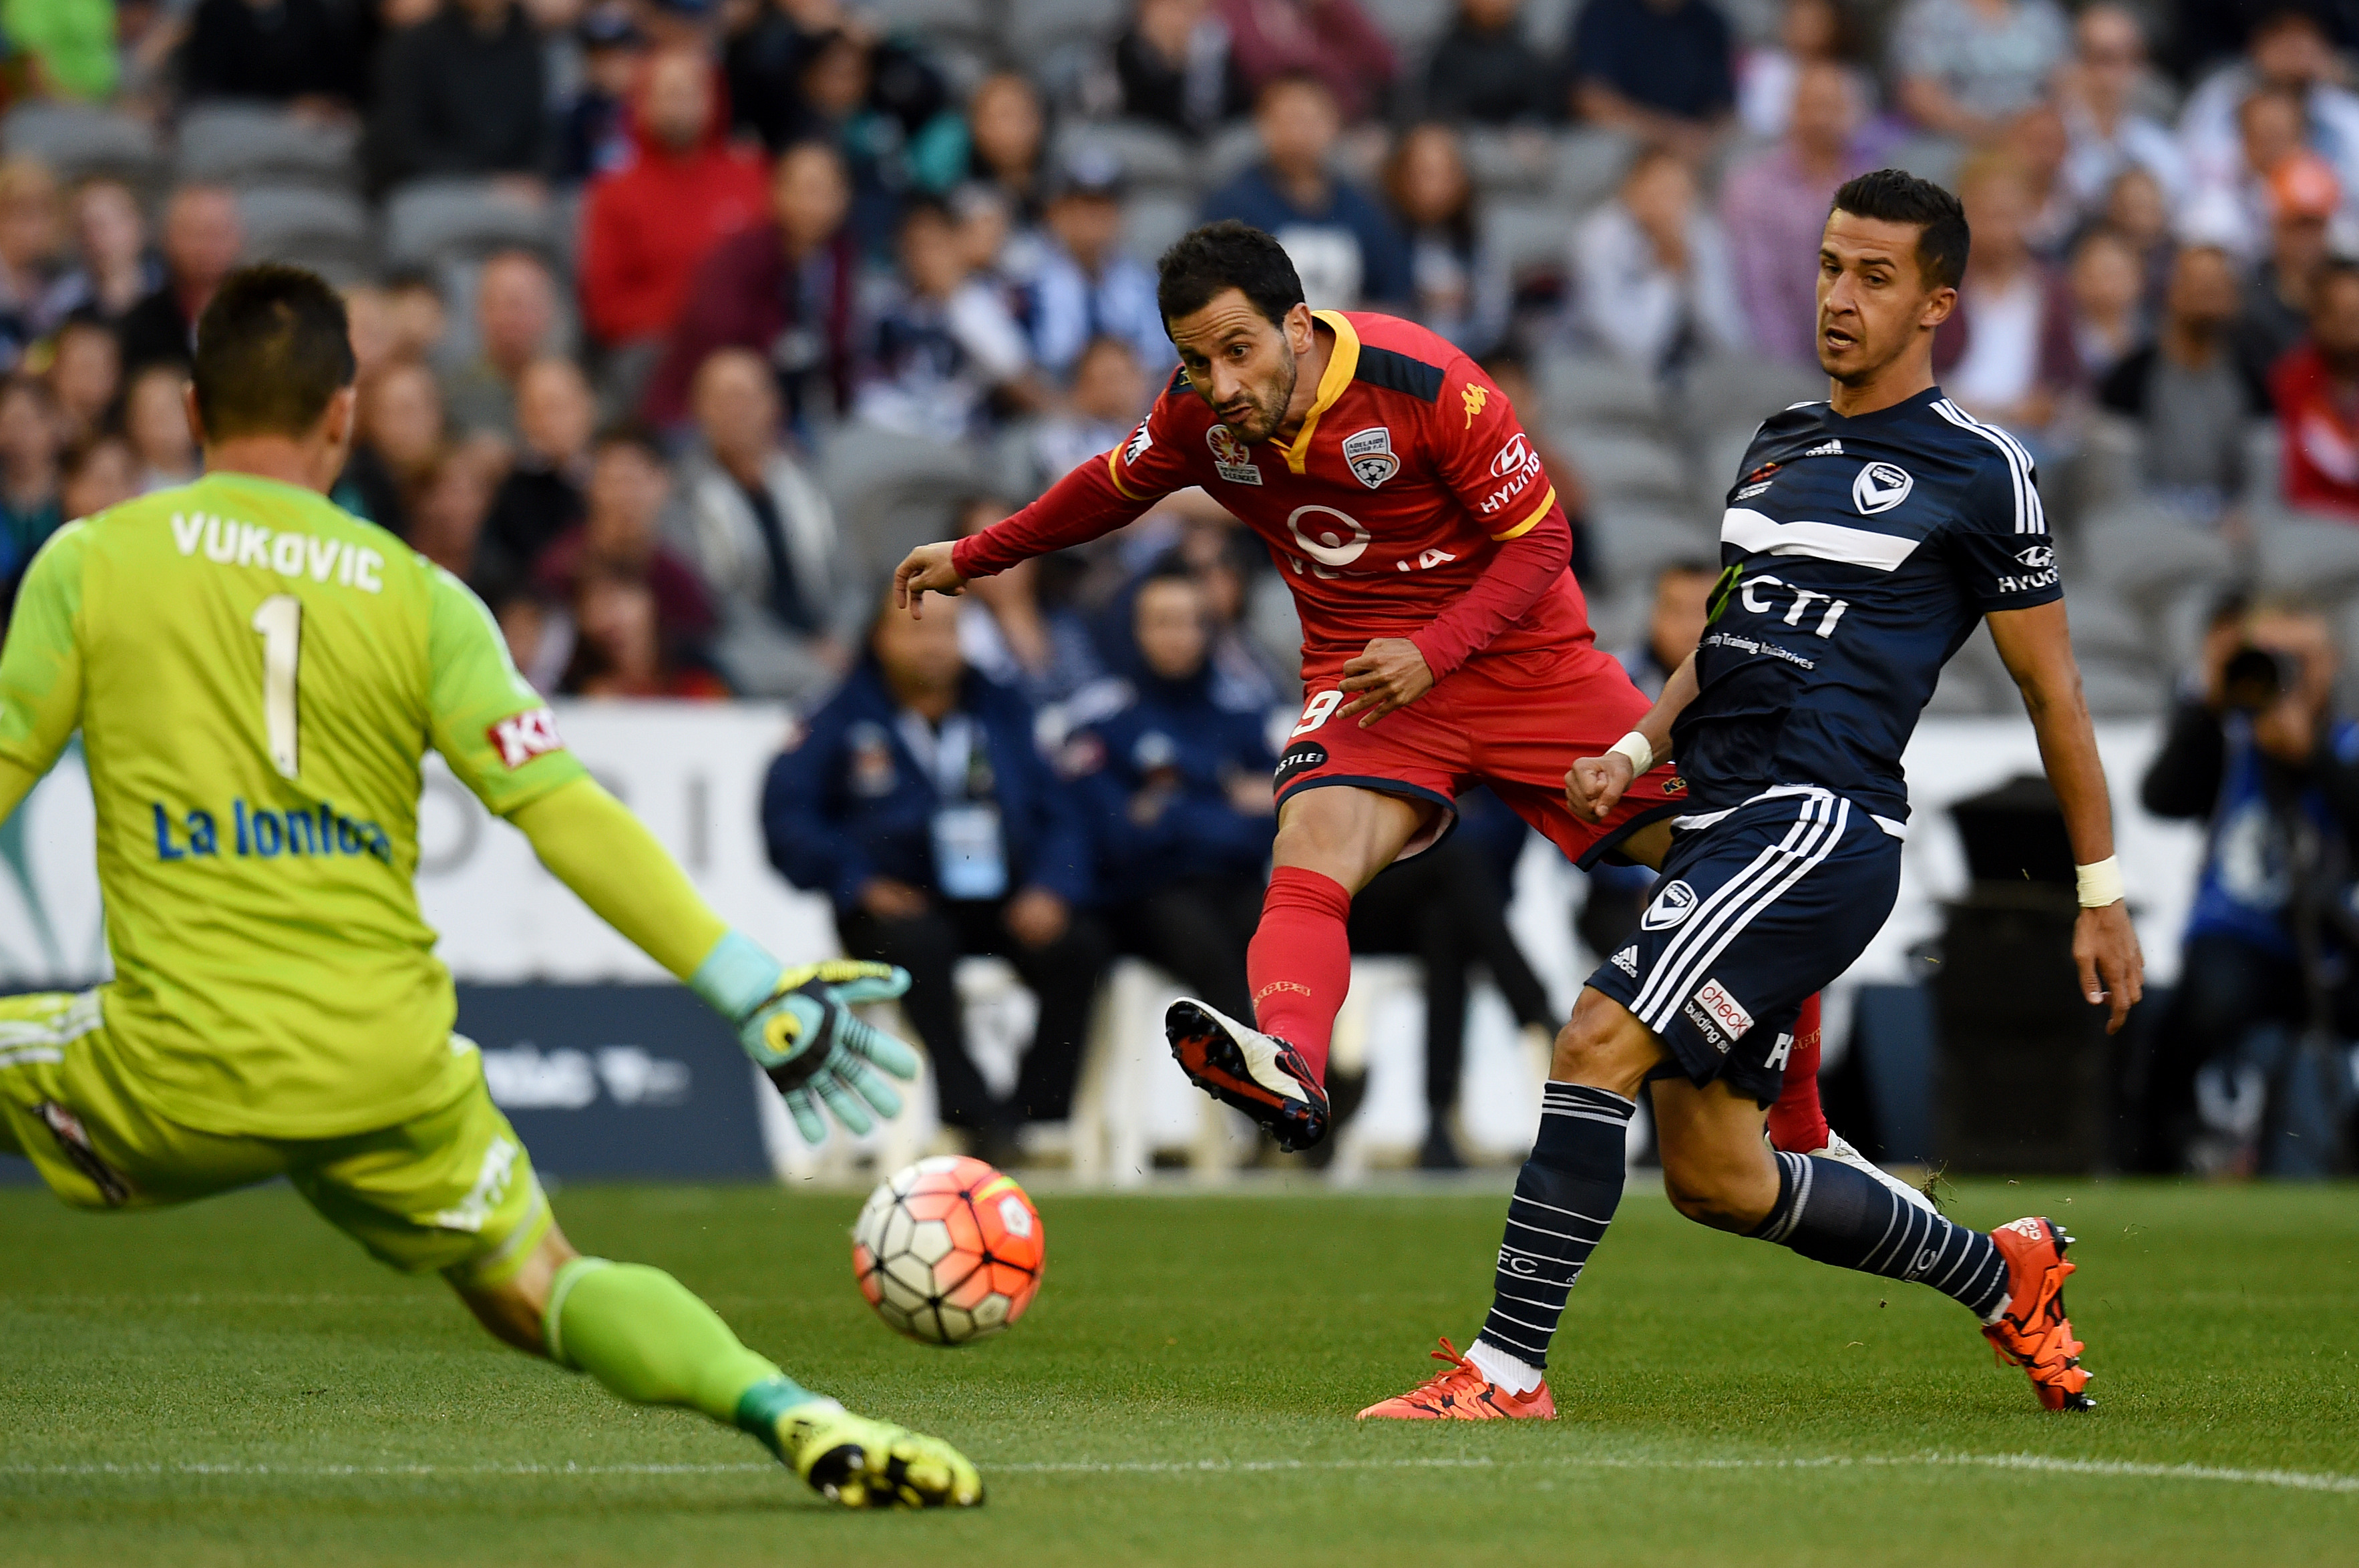 Sergio Cirio of Adelaide United tries to slip the ball past Victory 'keeper Daniel Vukovic. AAP Image/Tracey Nearmy